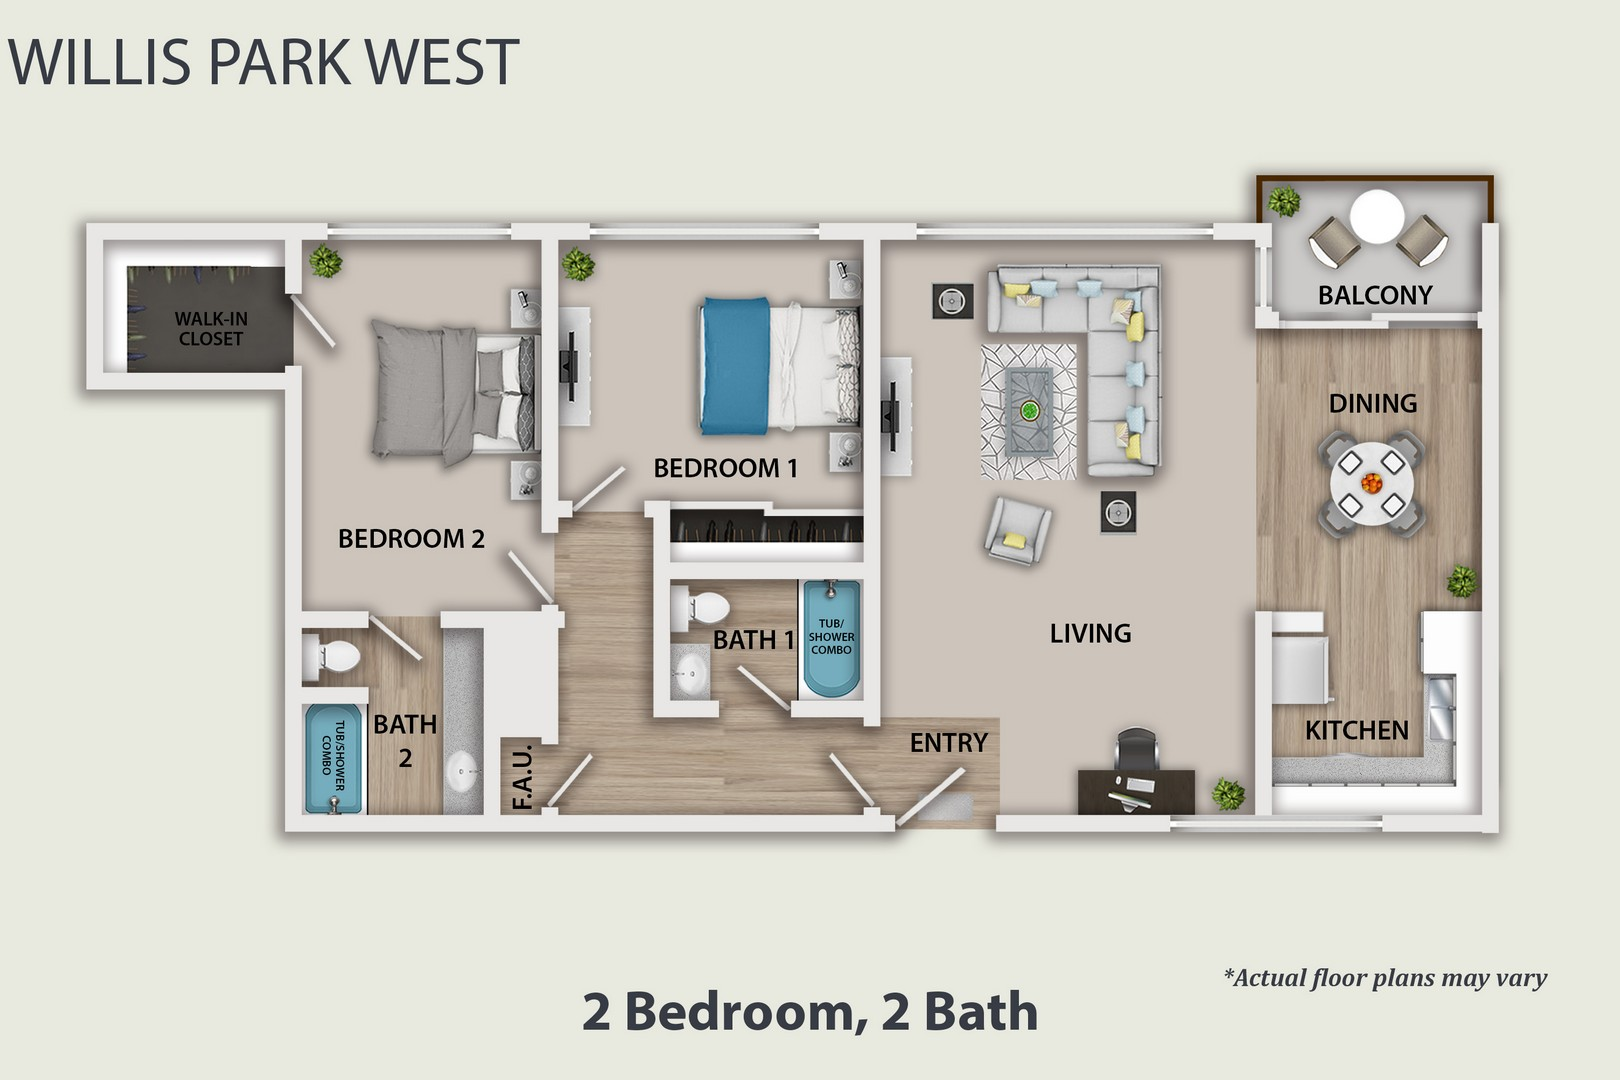 Willis Park West #15